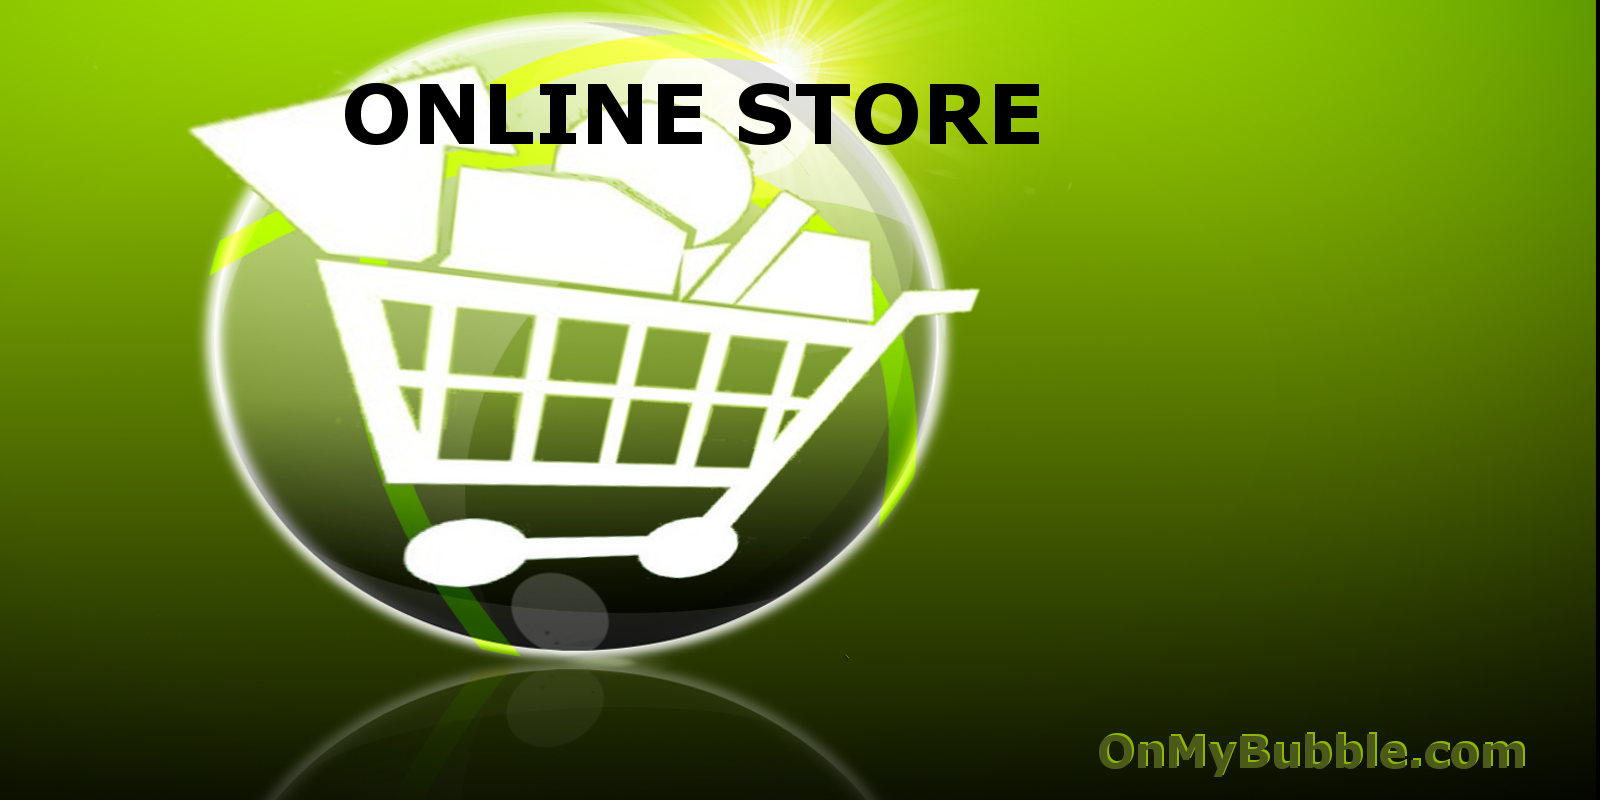 If you would like to try to sell your products online or have found that existing Online Store providers such as Shoppify and Woo Commerce are either too expensive or too complicated, then you should try OnMyBubble.com. Upon joining OnMyBubble.com you automatically have an Online Shop. To start selling you just have to List Your Products and market them to your fan-base or target market. OnMyBubble.com blogger lets you write articles to promote your products, and the OnMyBubble.com Social network is a great way to communicate with your fans for free and lets you engage with your potential customers. Unlike Online Store providers which charge up to £300 per month subscriptions with listing fees added on top, with OnMyBubble.com your only costs are a 5% sales commission and with the FREE Online Store Option your store may display ads. It is possible to pay for professional support and have advertising removed from your store. This is often a better option than purchasing costly subscriptions to Shopify, Amazon or other Online Merchant Solutions.